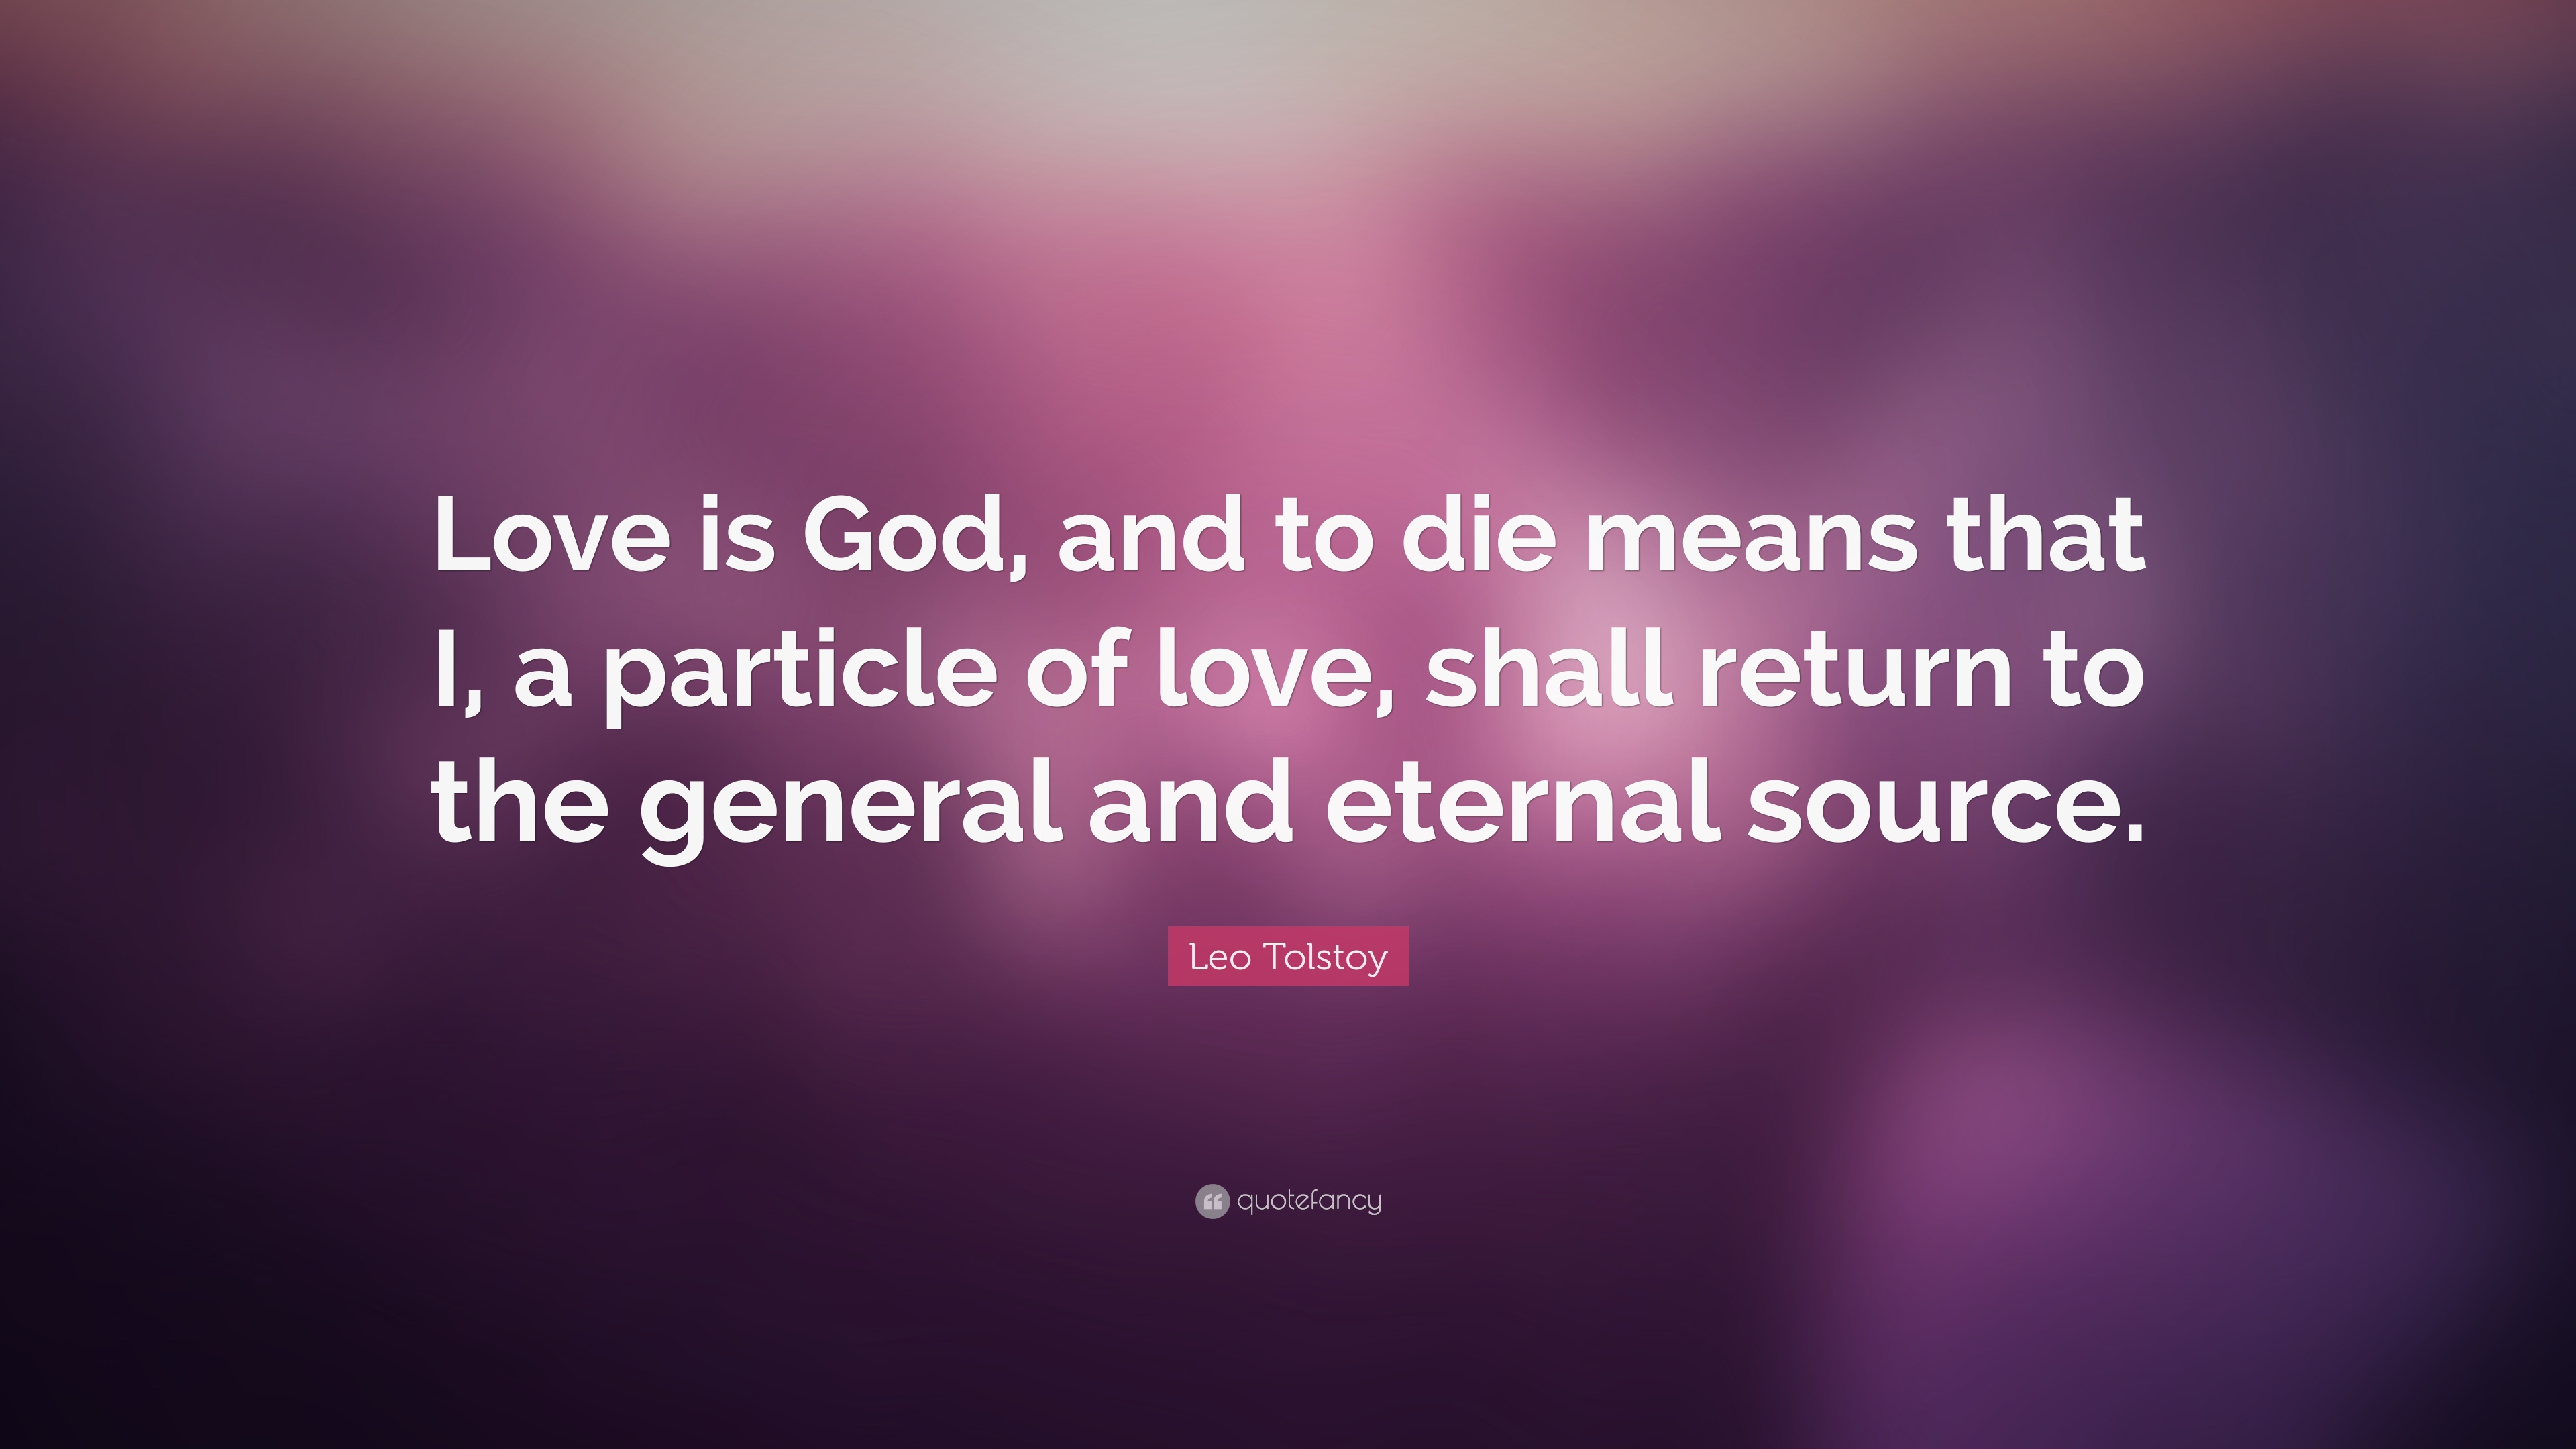 Leo Tolstoy Quote: Love is God, and to die means that I, a particle ...